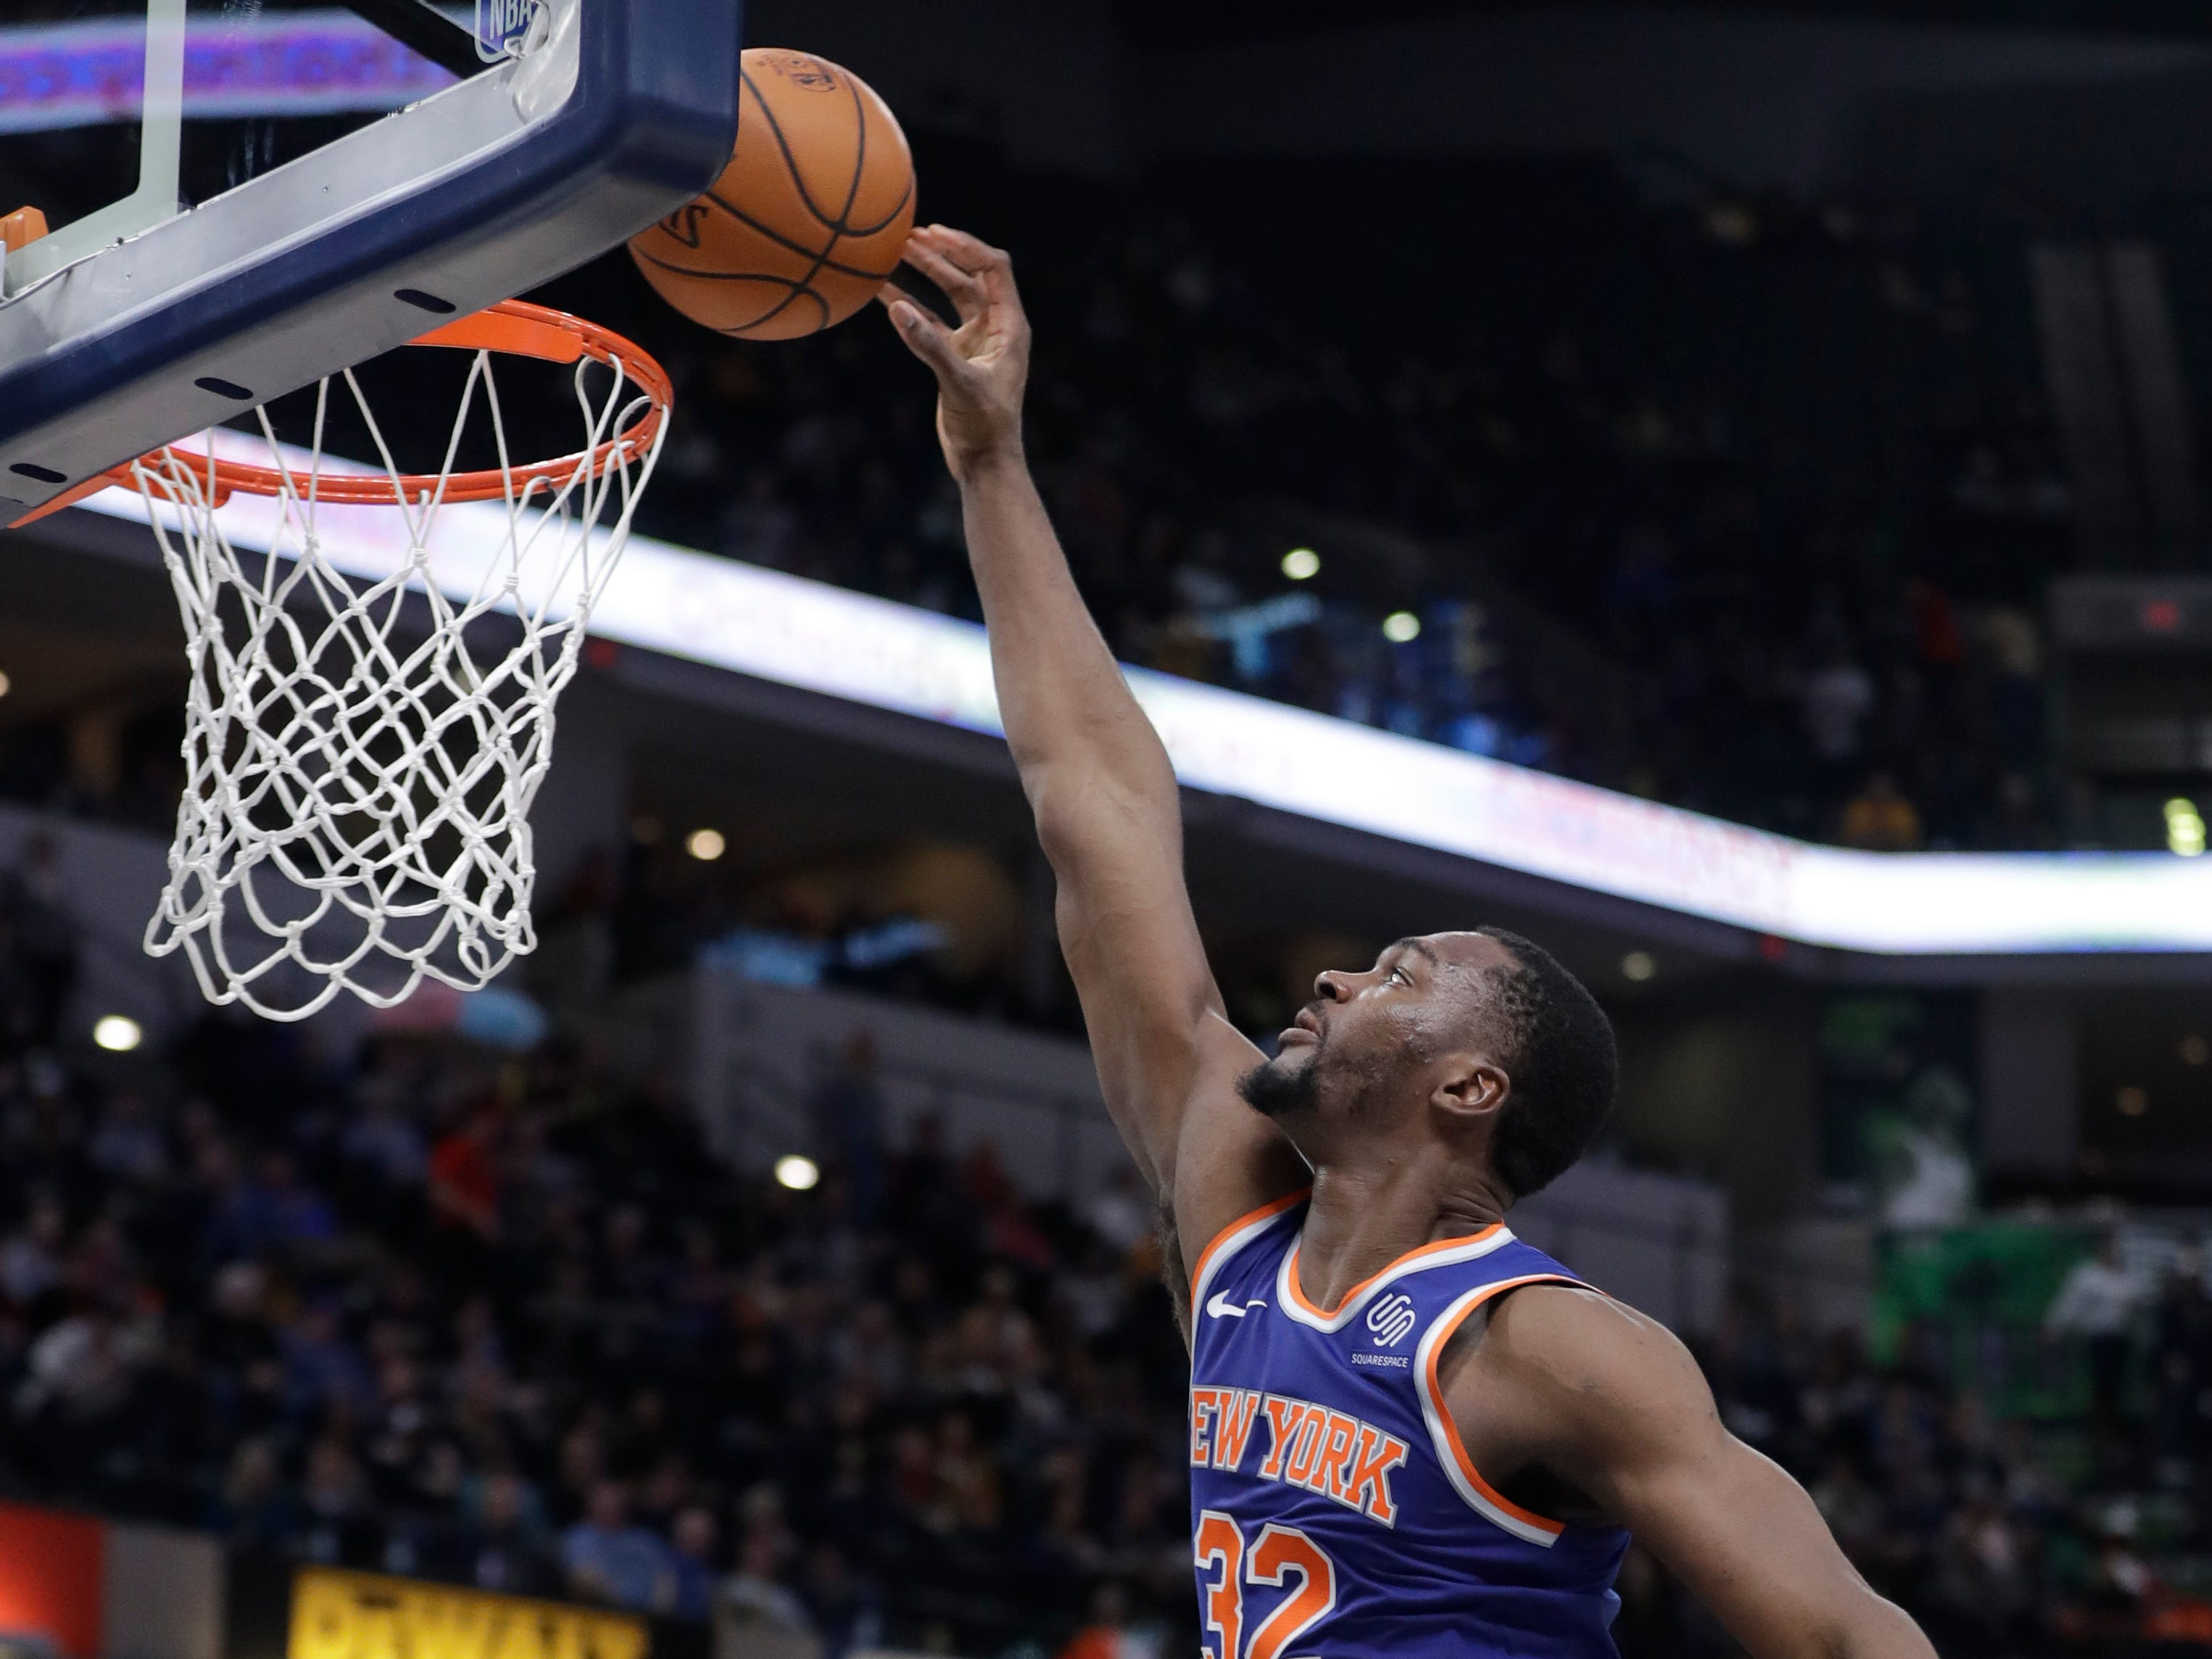 New York Knicks' Noah Vonleh (32) goes up for a dunk over Indiana Pacers' Thaddeus Young (21) during the first half of an NBA basketball game Tuesday, March 12, 2019, in Indianapolis.